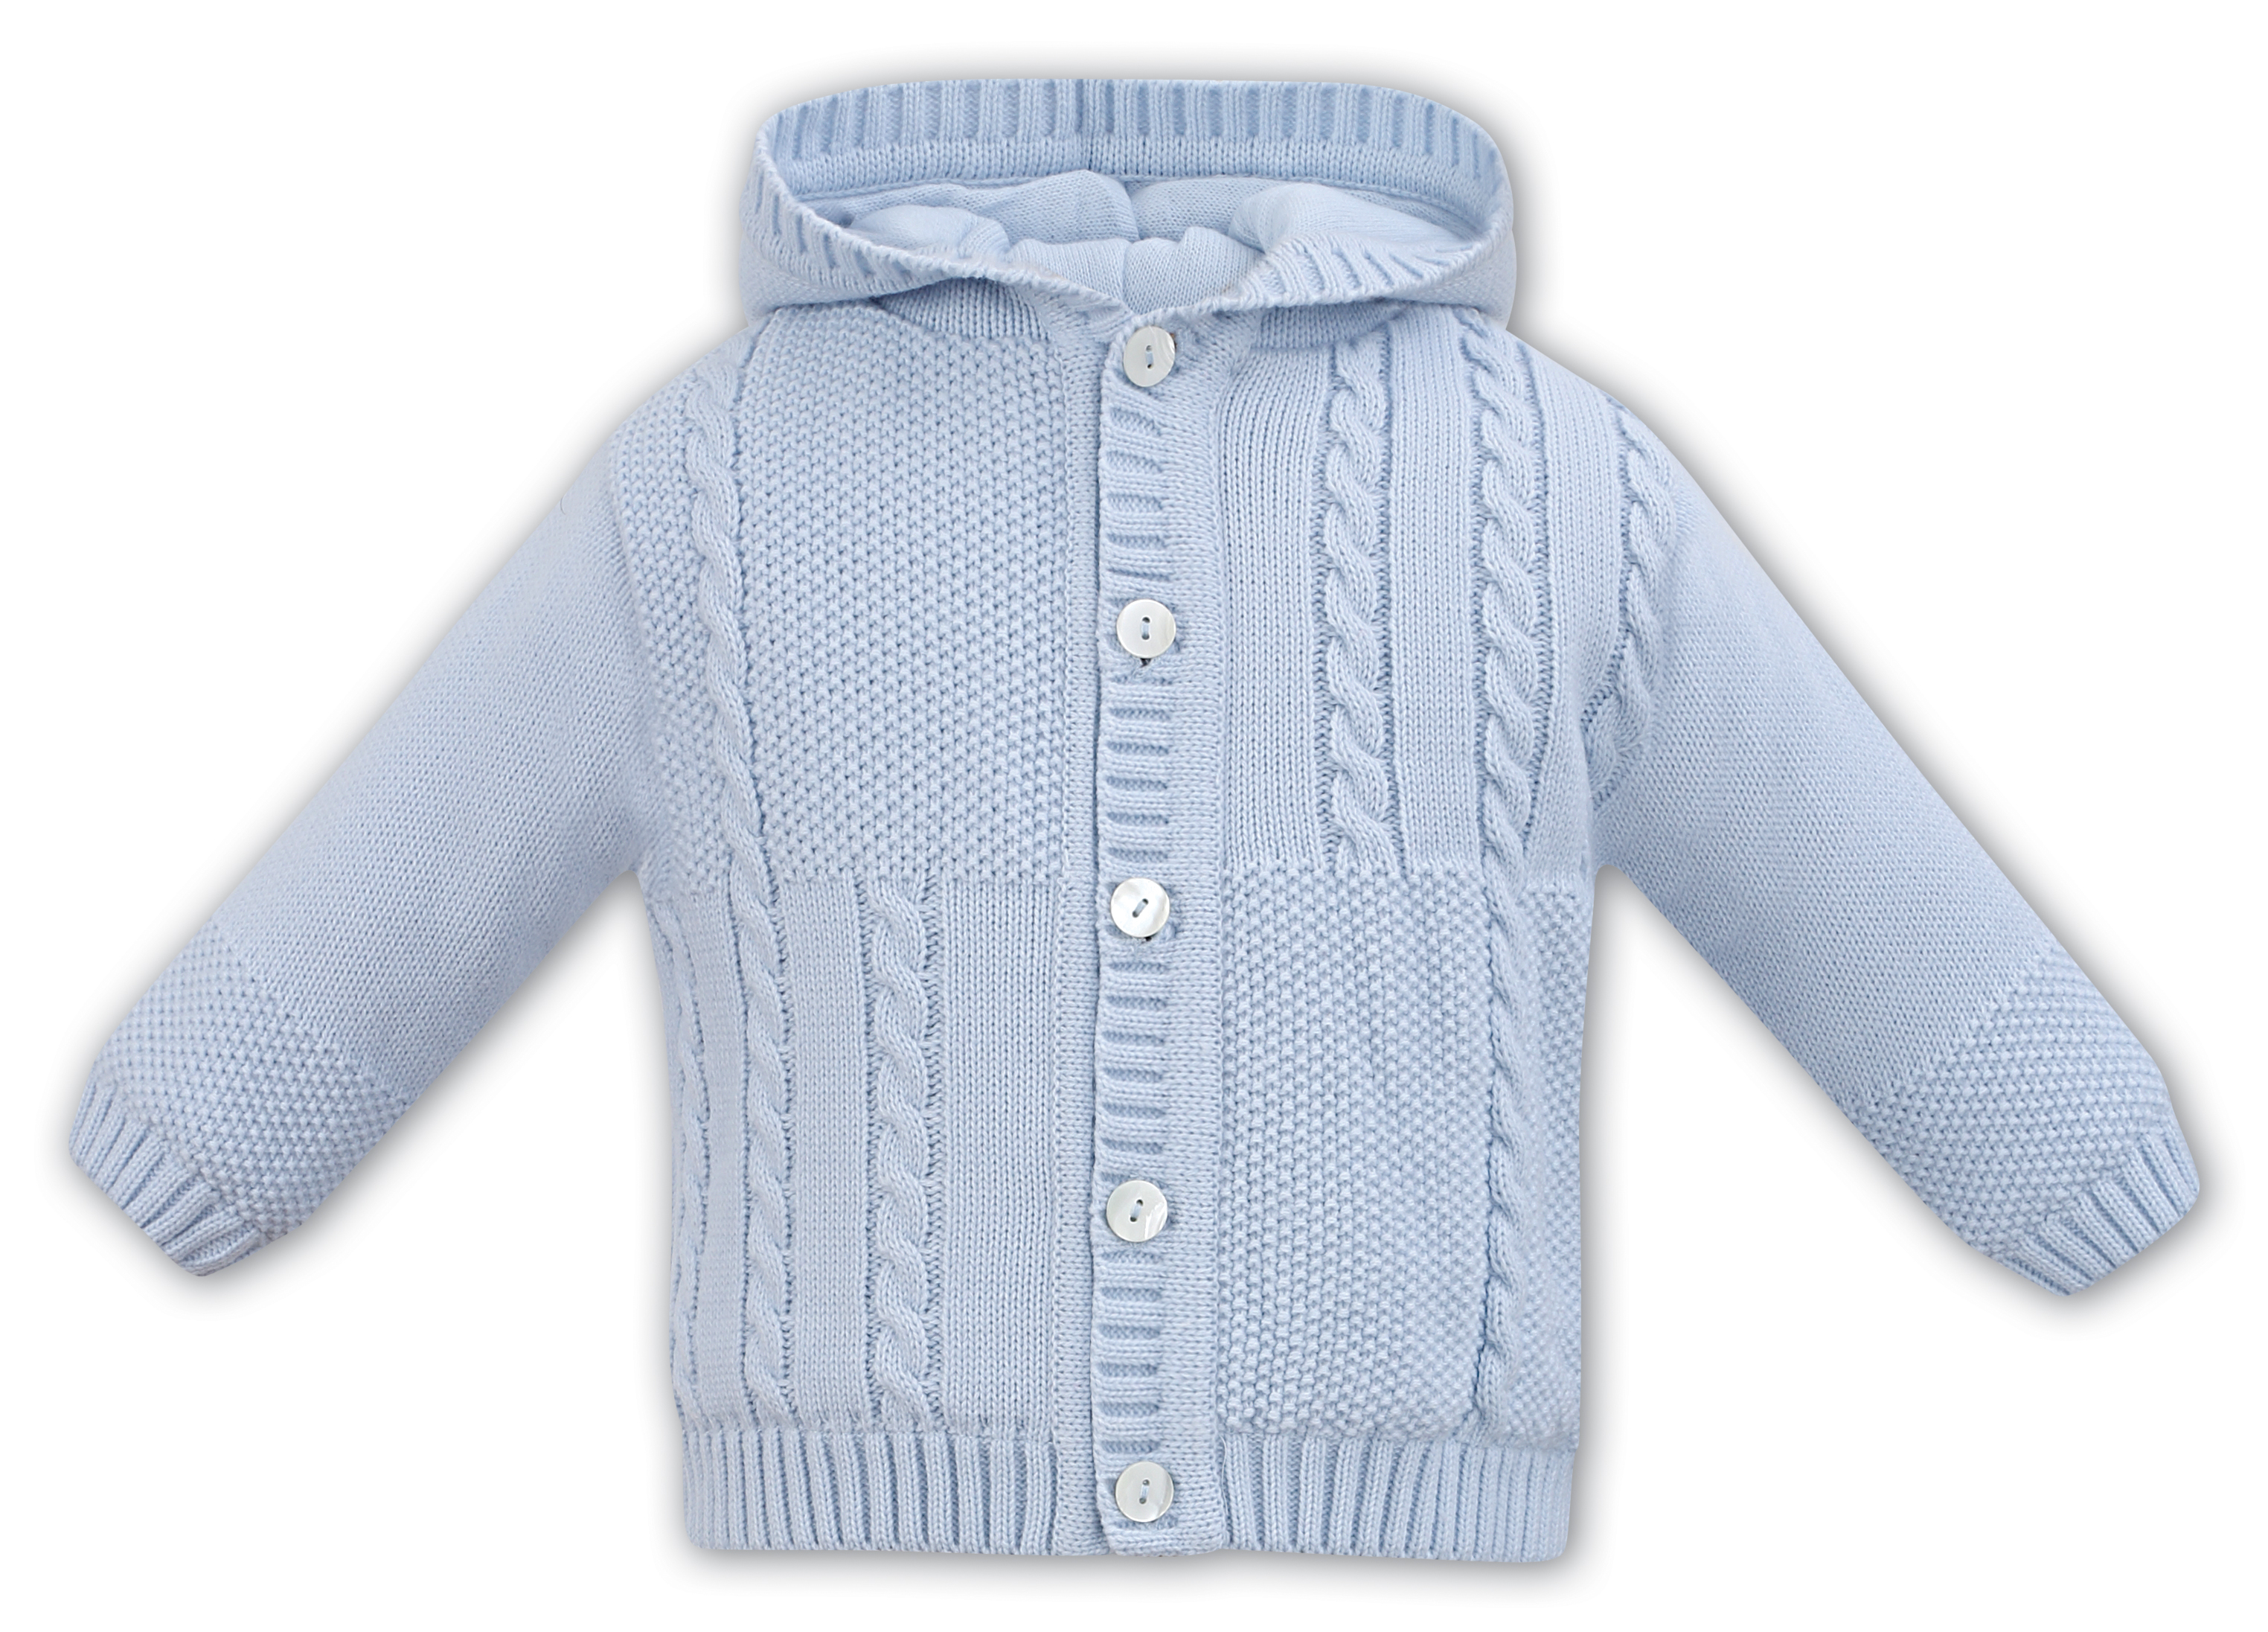 f7f0e7ea85c2 SARAH LOUISE JACKET 008067 - Babies Blessings